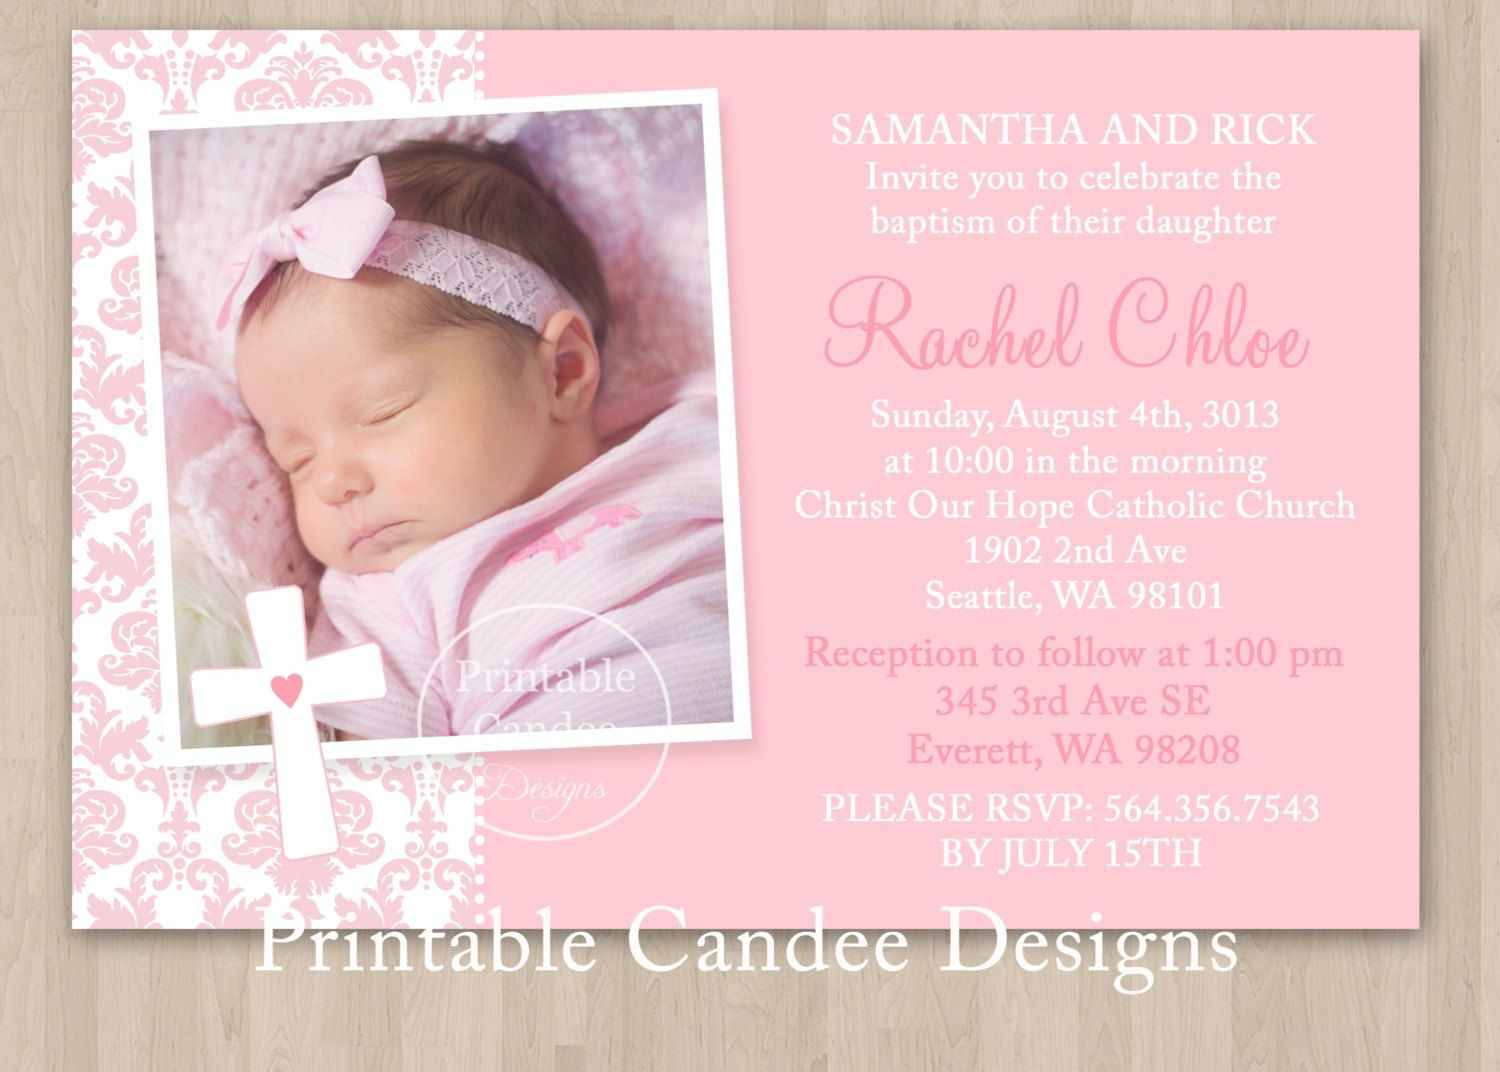 Free Printable Baptism Invitations | Chivito's Bautizo | Christening - Free Printable Personalized Baptism Invitations